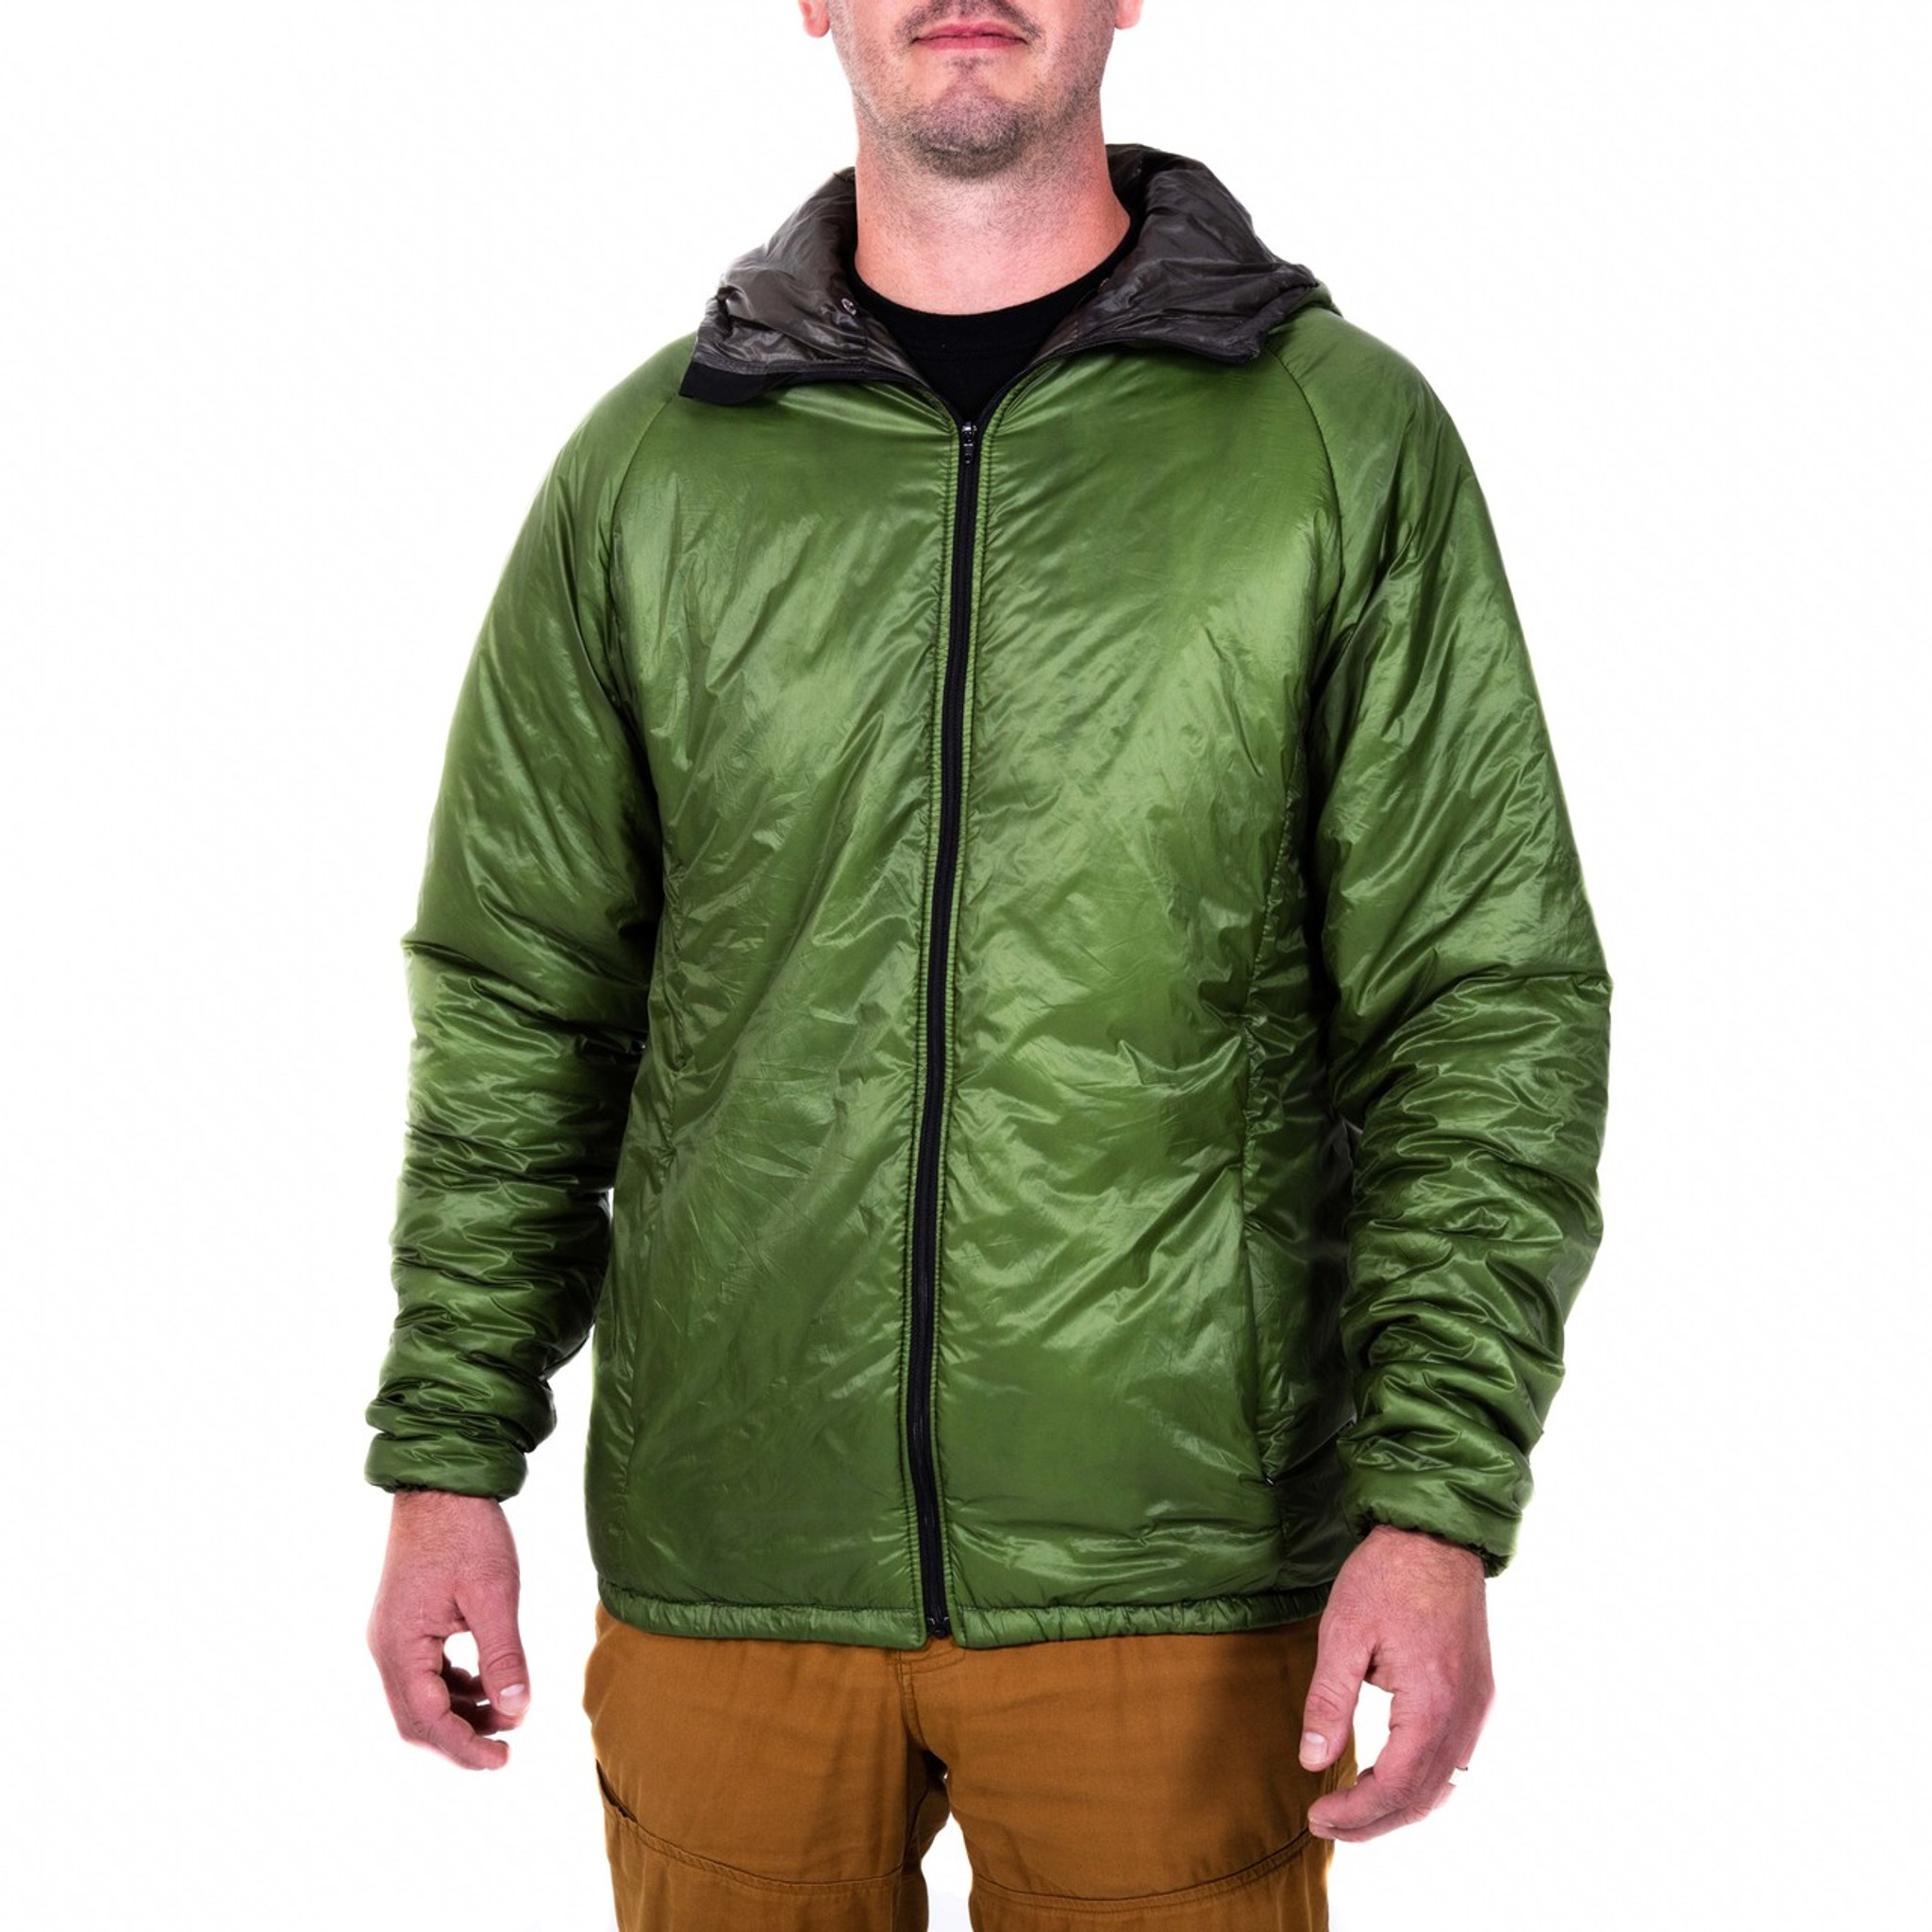 1d80d75407 Torrid APEX Jacket | Ultralight Ultra-warm Insulated Jacket